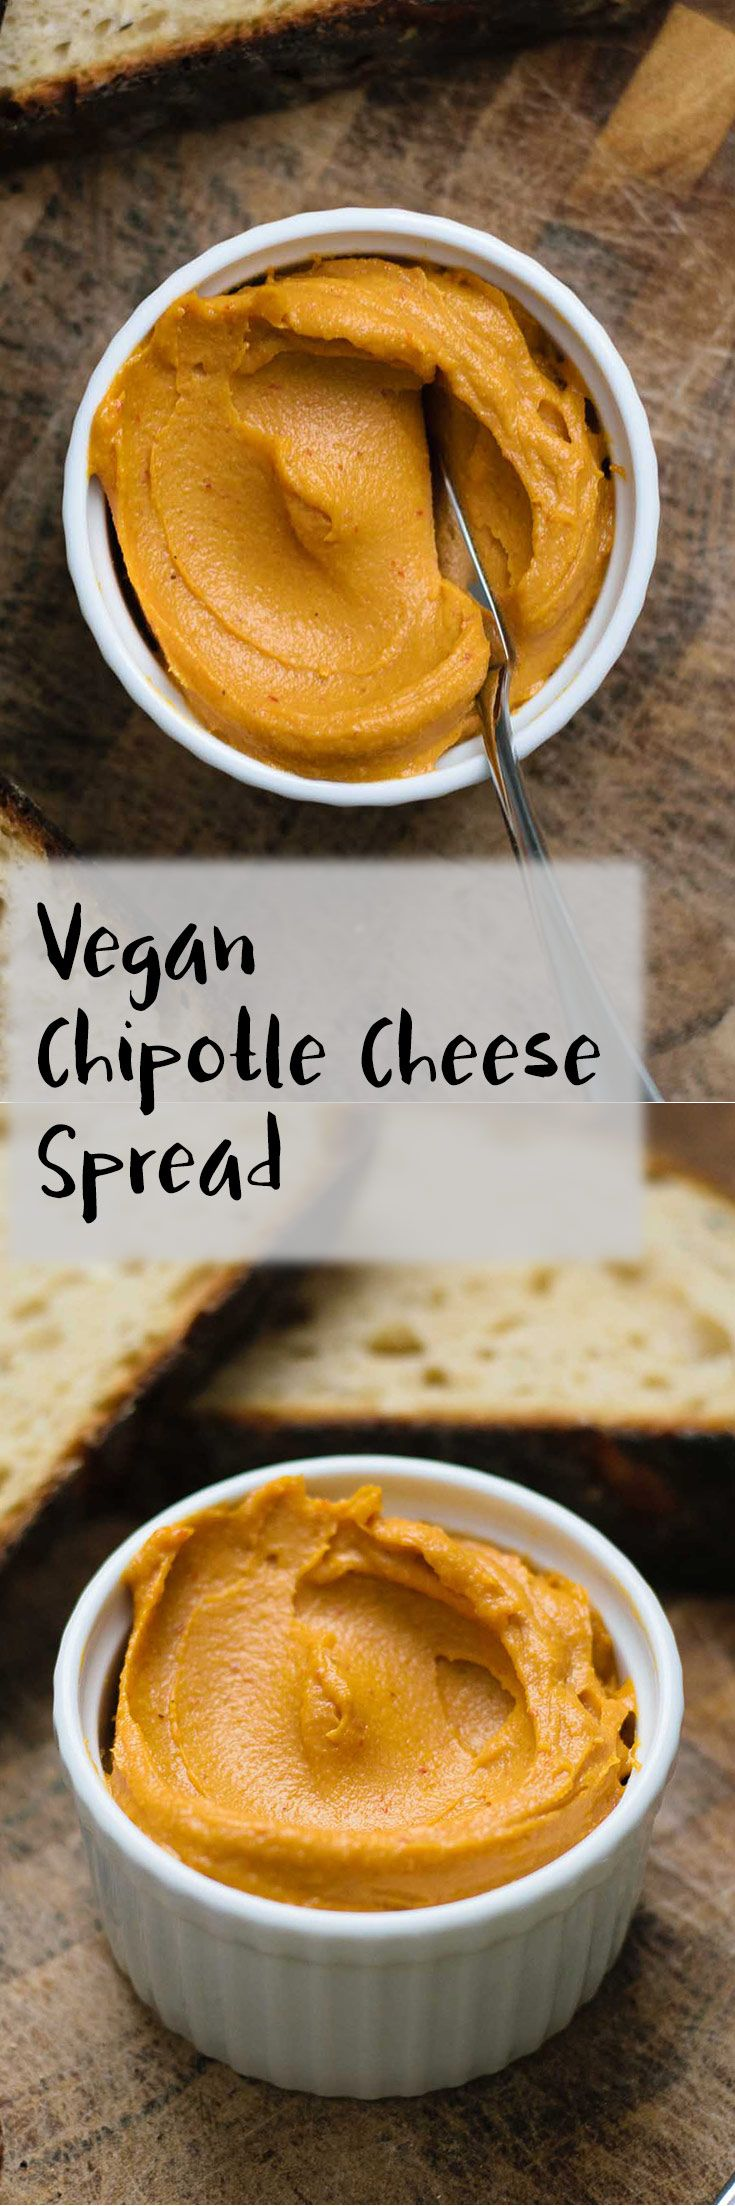 This vegan chipotle cheese spread is a delicious smokey cashew-based and ultra creamy cheese. It's quick and easy to make and is perfect for spreading on toast or crackers! | thecuriouschickpea.com #vegancheese